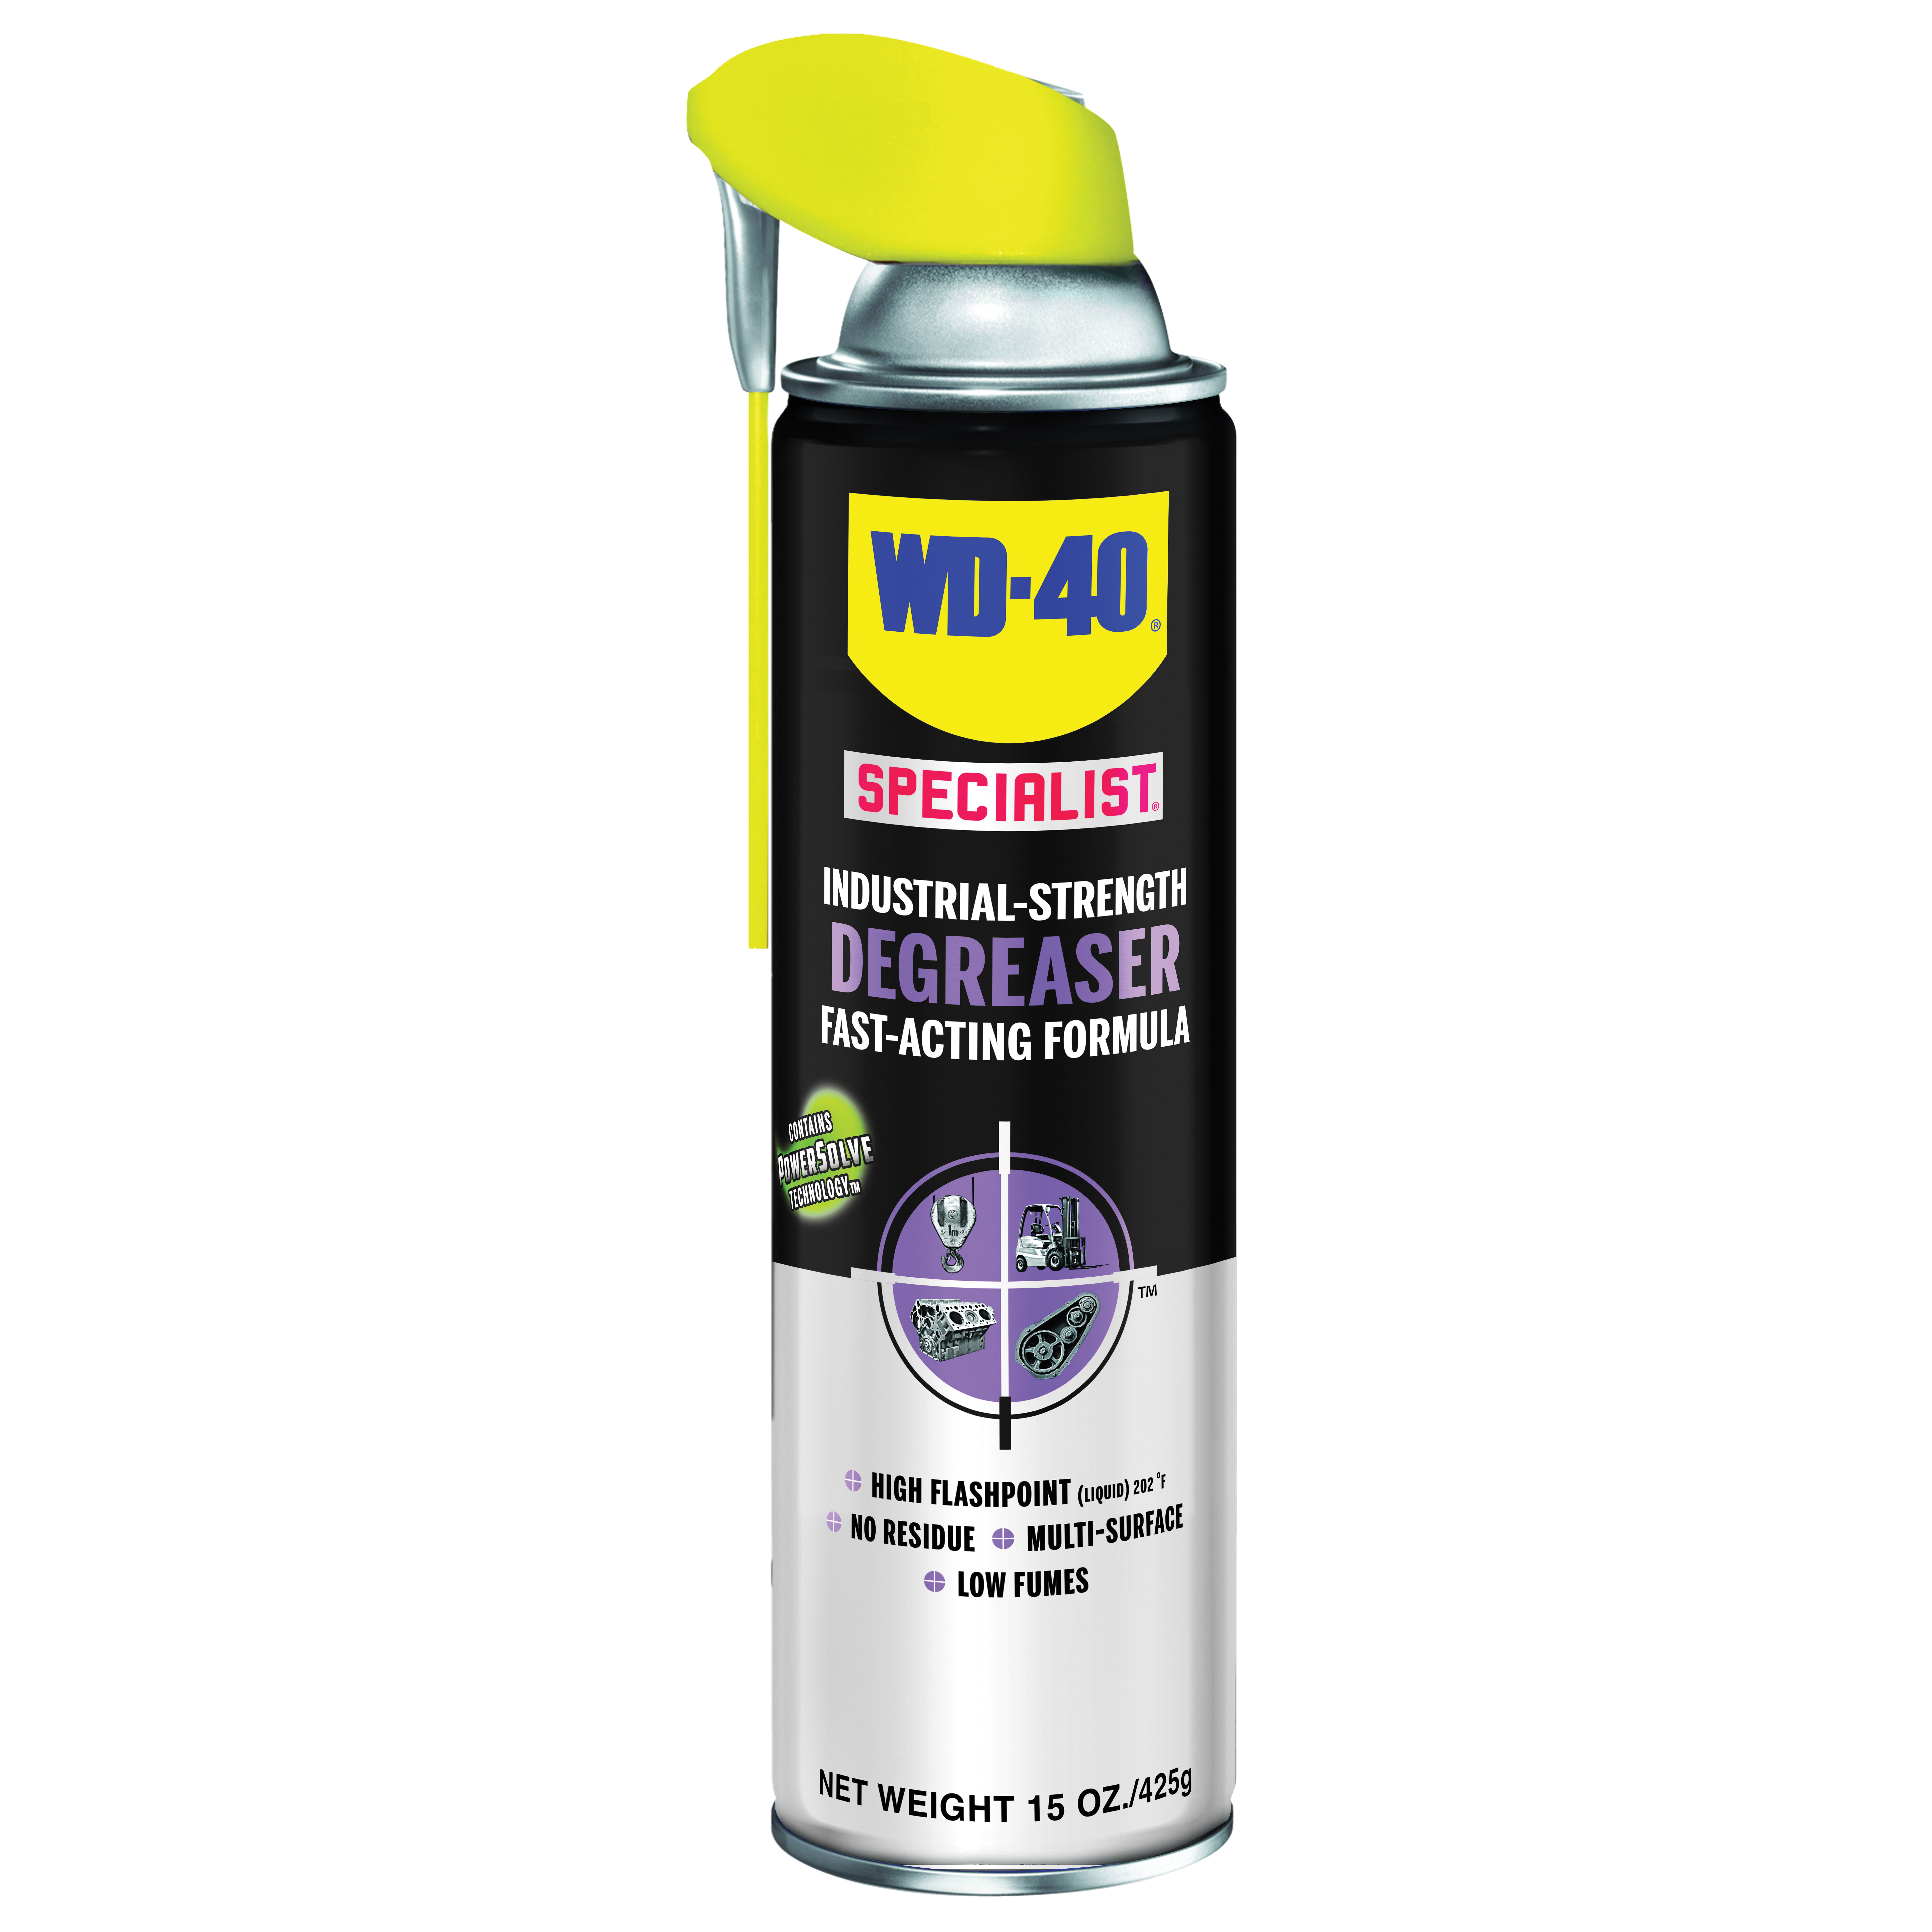 Picture of WD-40 300280 Degreaser, 15 oz Package, Aerosol Can, Liquid, Mild Petroleum